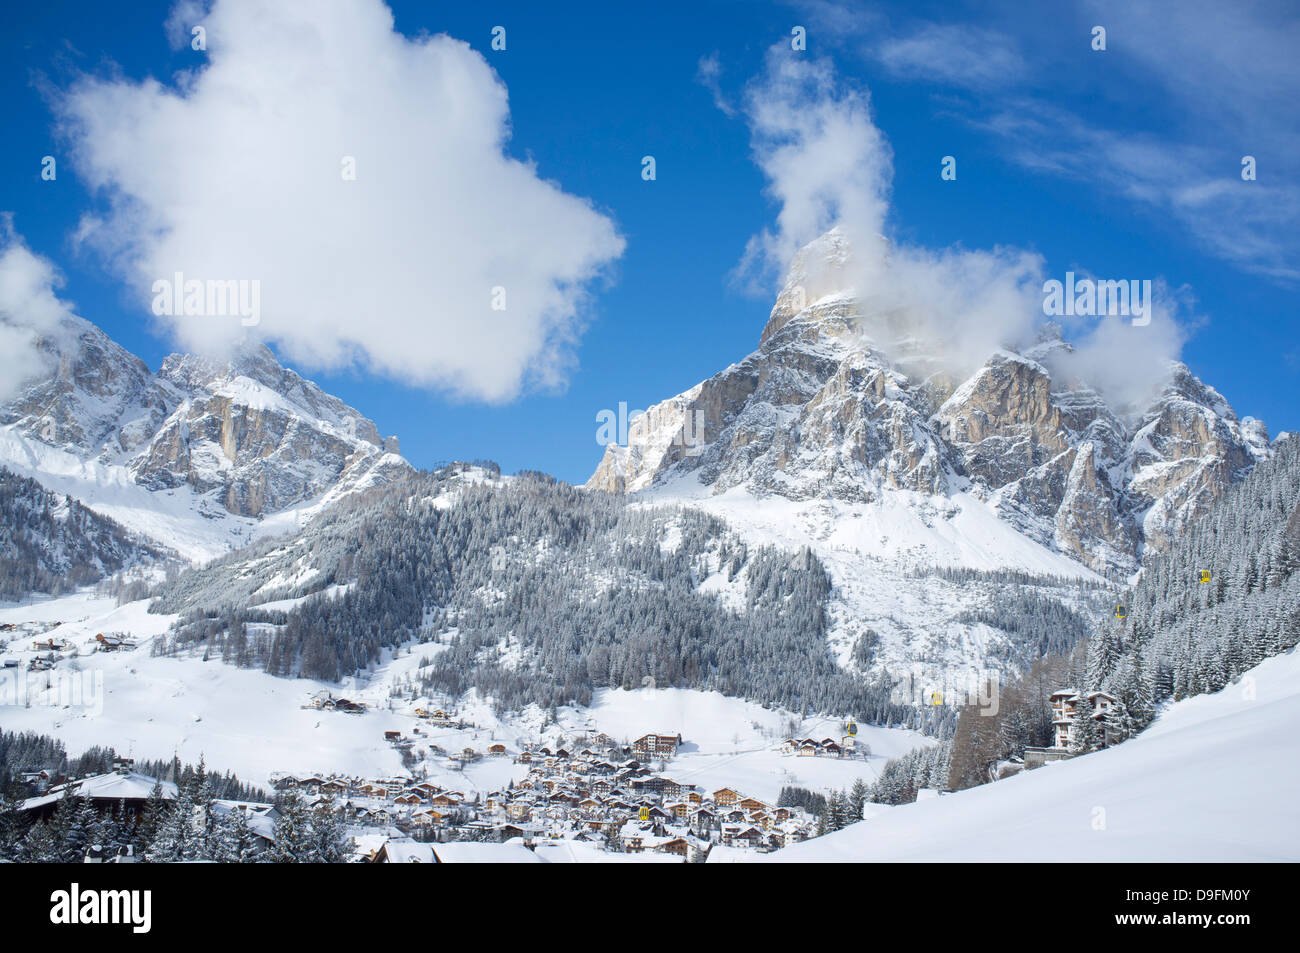 A view toward Corvara and Sassongher Mountain from the ski resort of Alta Badia in the Dolomites in the South Tyrol, Stock Photo